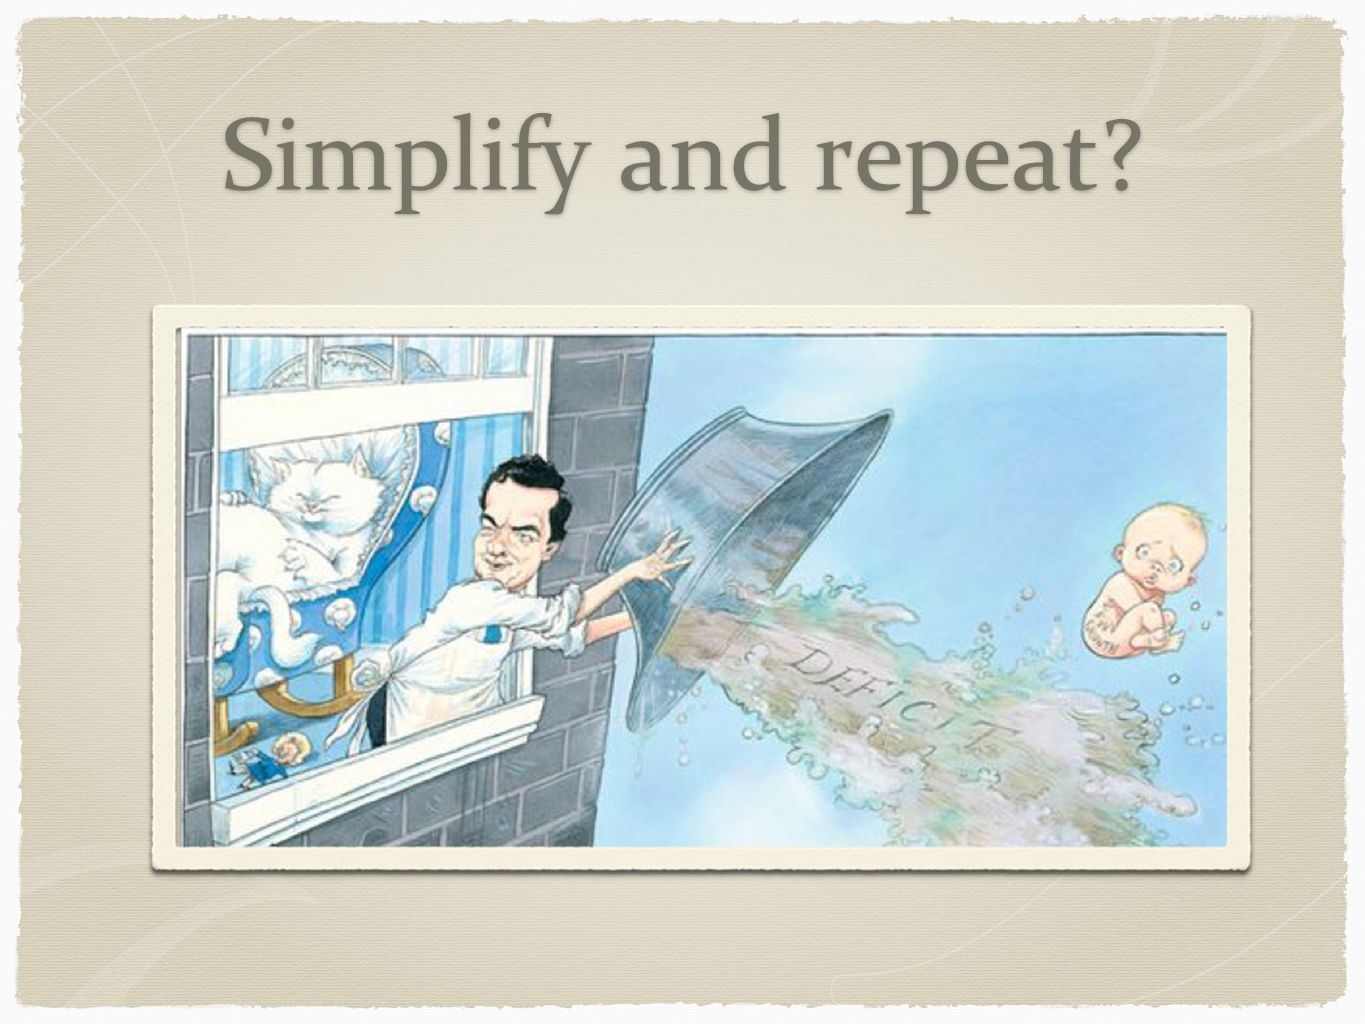 Simplify and repeat